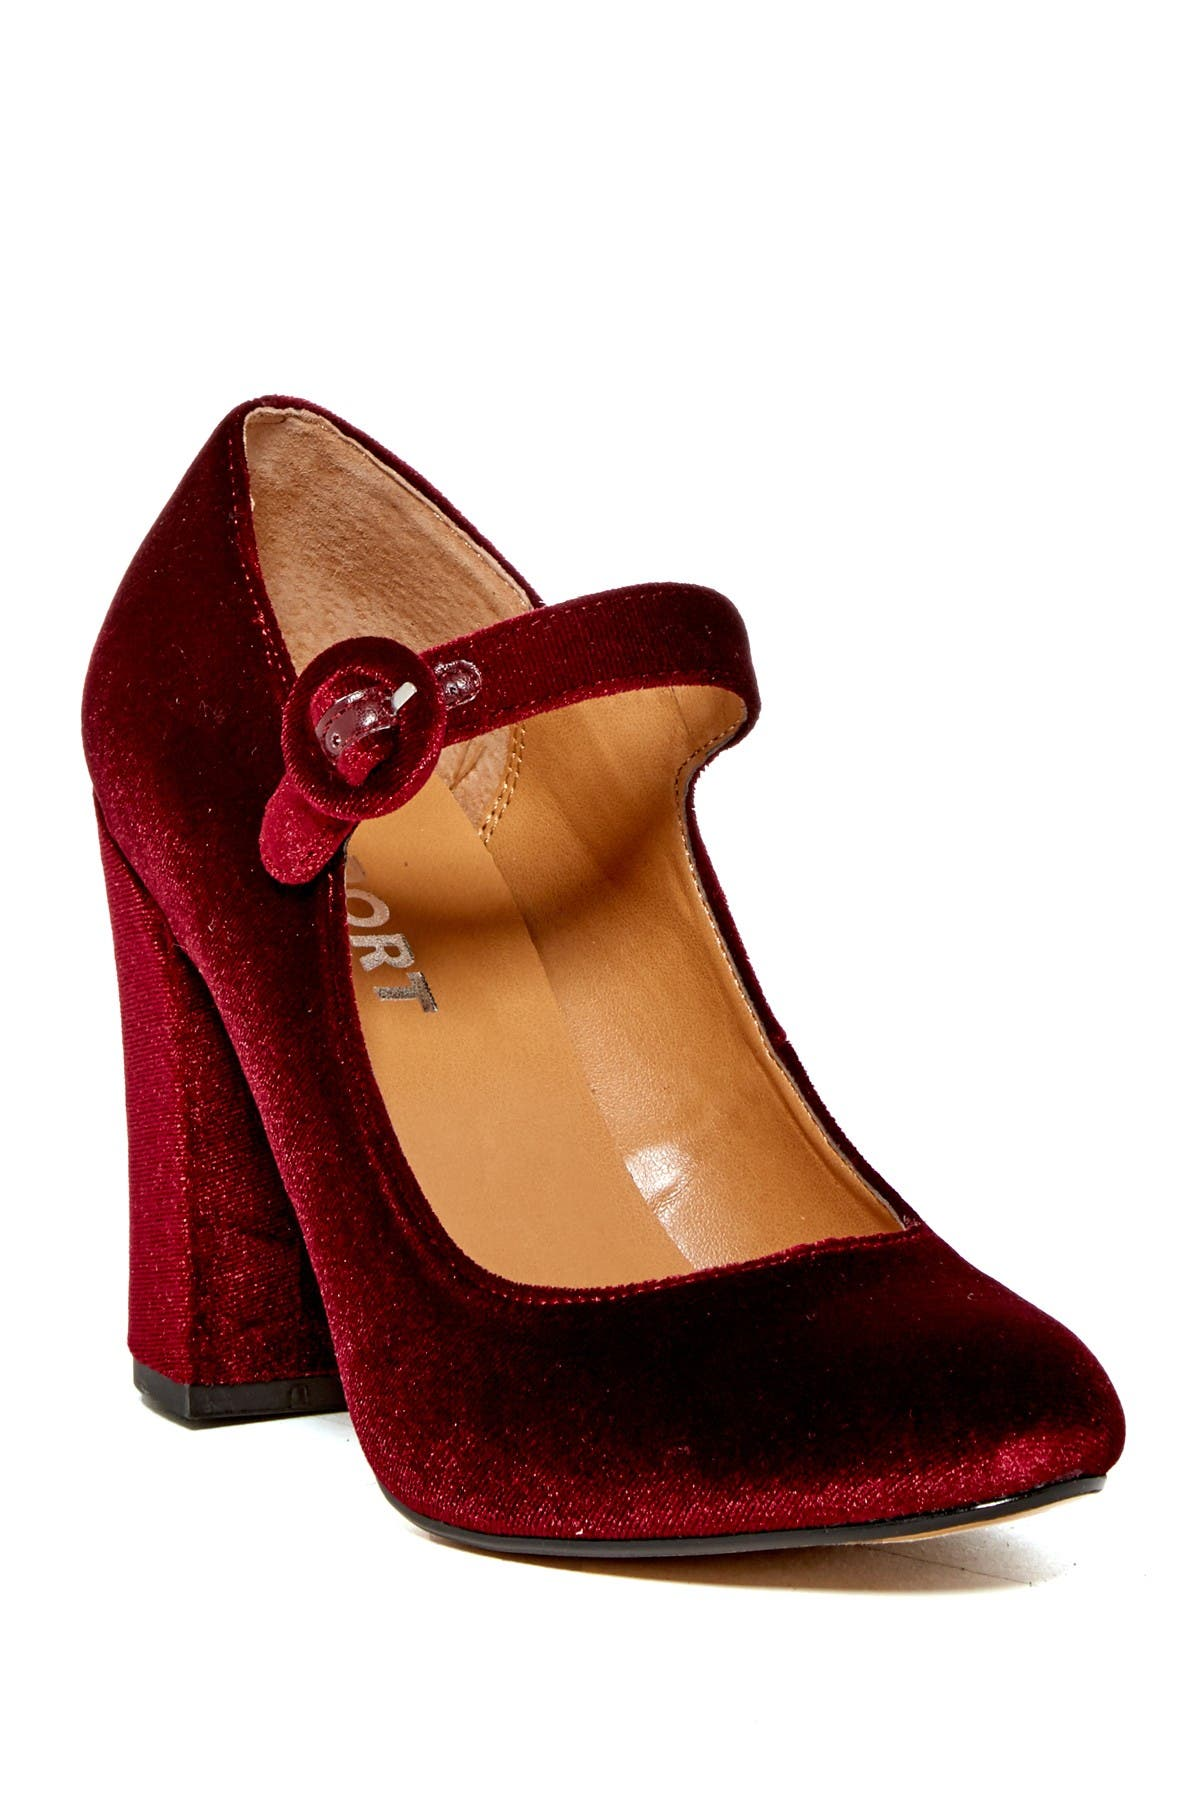 Image of Report Lecrone Mary Jane Pump